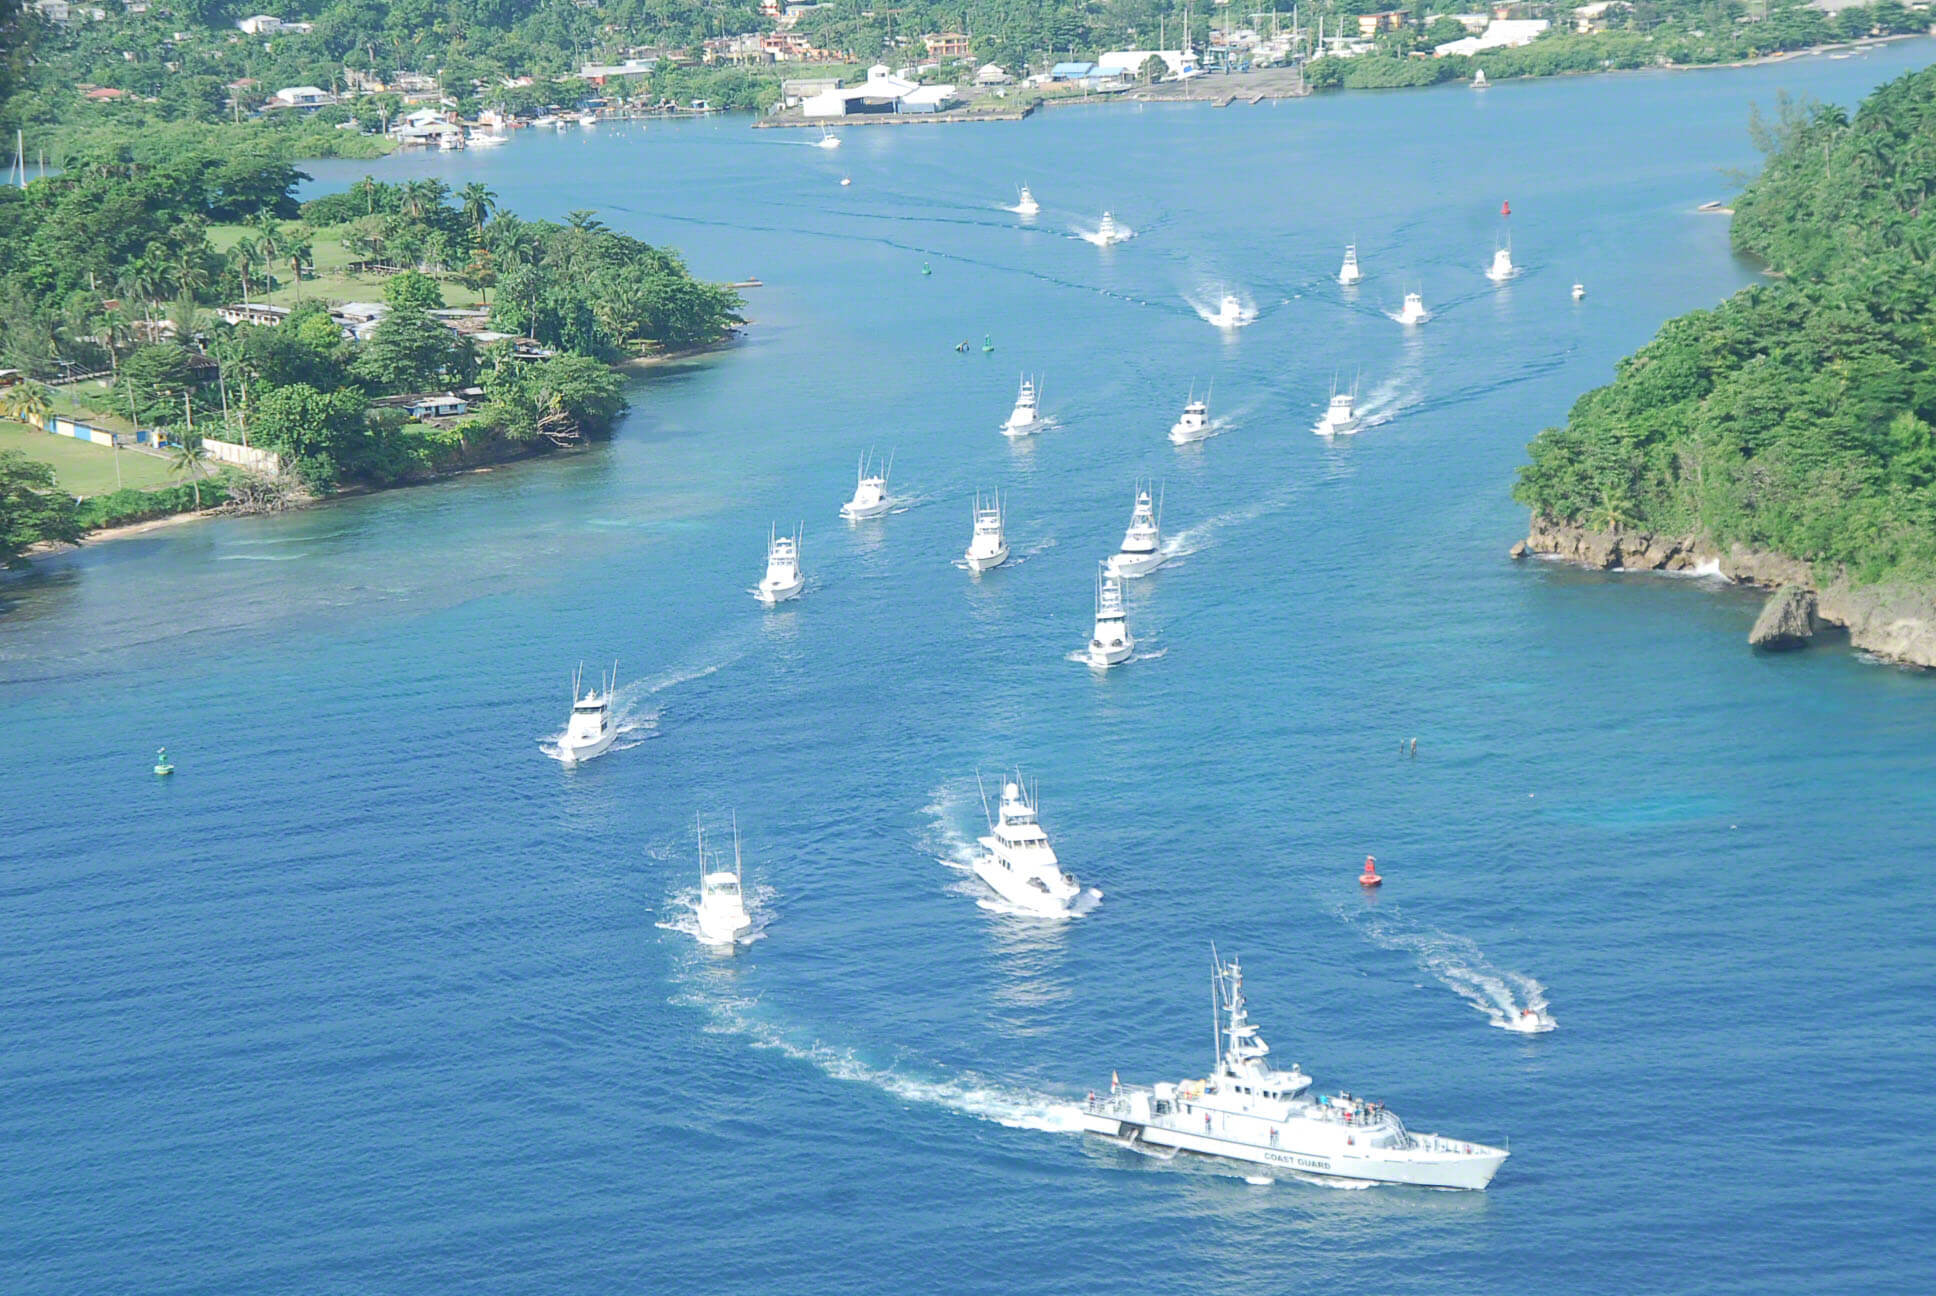 Port Antonio Marlin Tournament